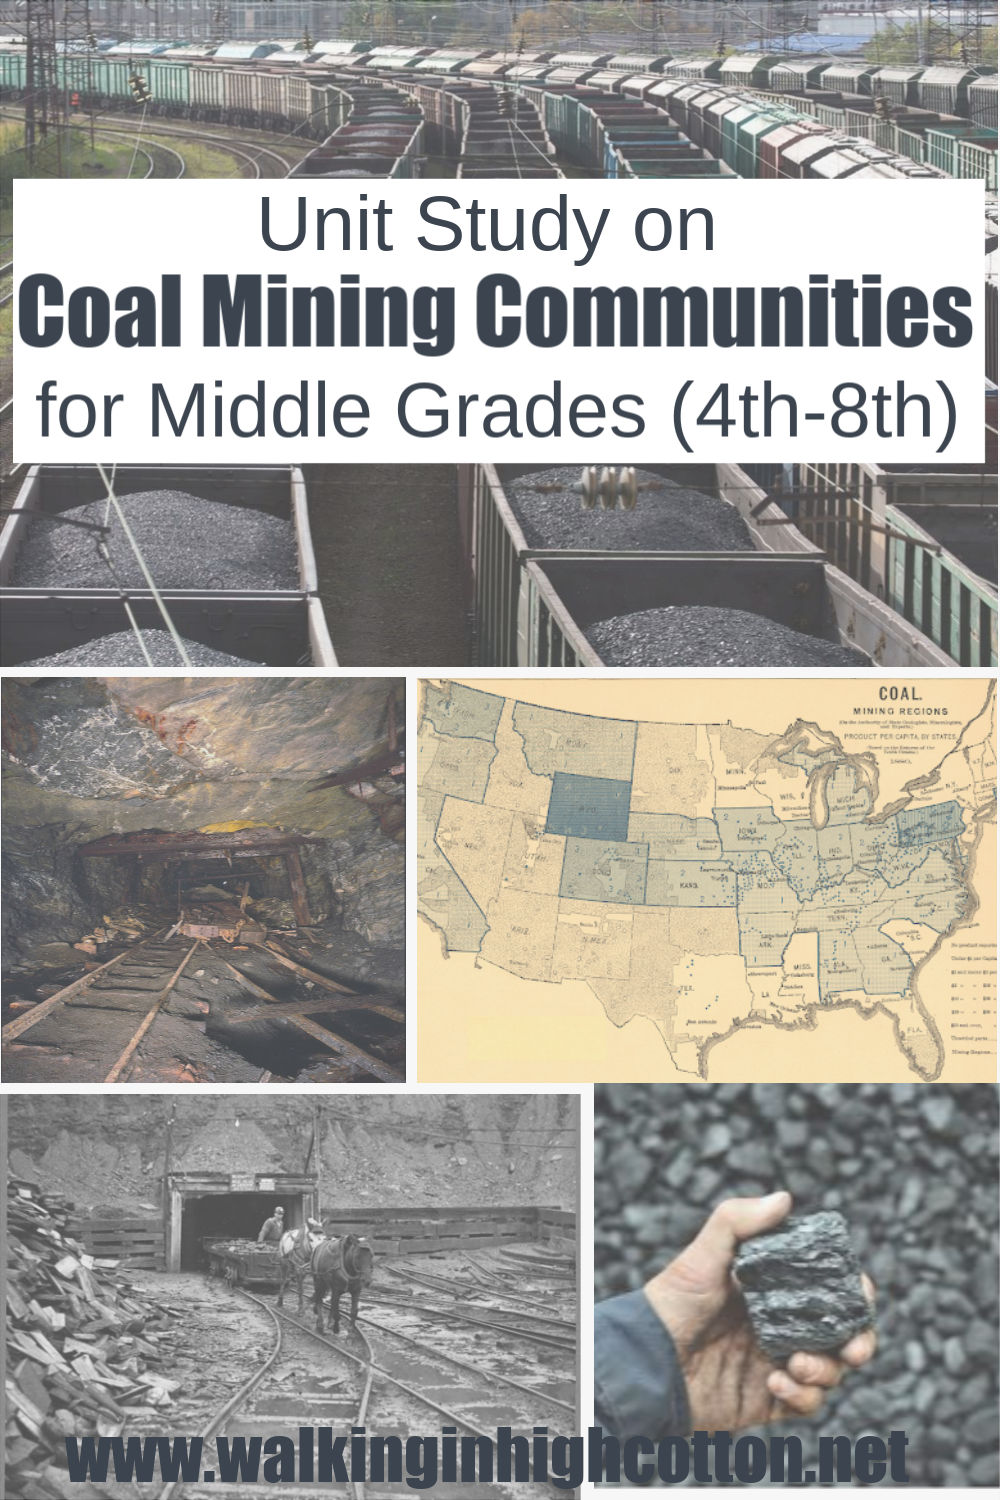 Resources for a Unit Study on coal mining communities, including FREE Amazon and YouTube video list, website links, book lists, and templates for student projects and reports. Perfect for grades 4-8, but could easily be aged up or down to suit a general family unit study as well. via Walking in High Cotton